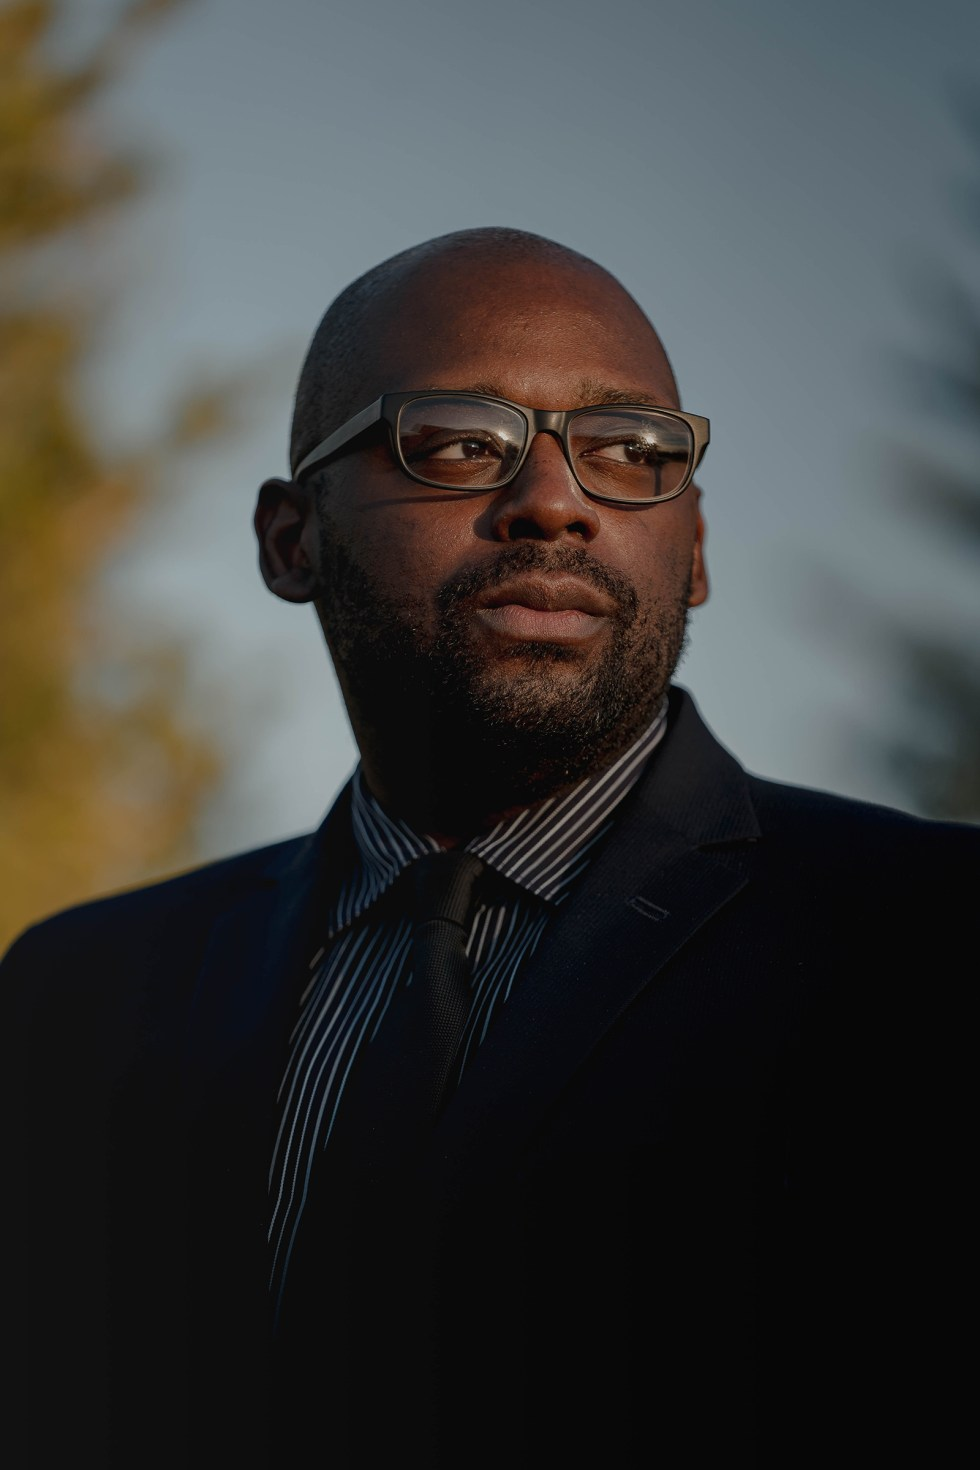 Earl McGhee left a deputy sheriff's job in Wisconsin after filing a complaint alleging racism and discrimination at the law enforcement training academy.